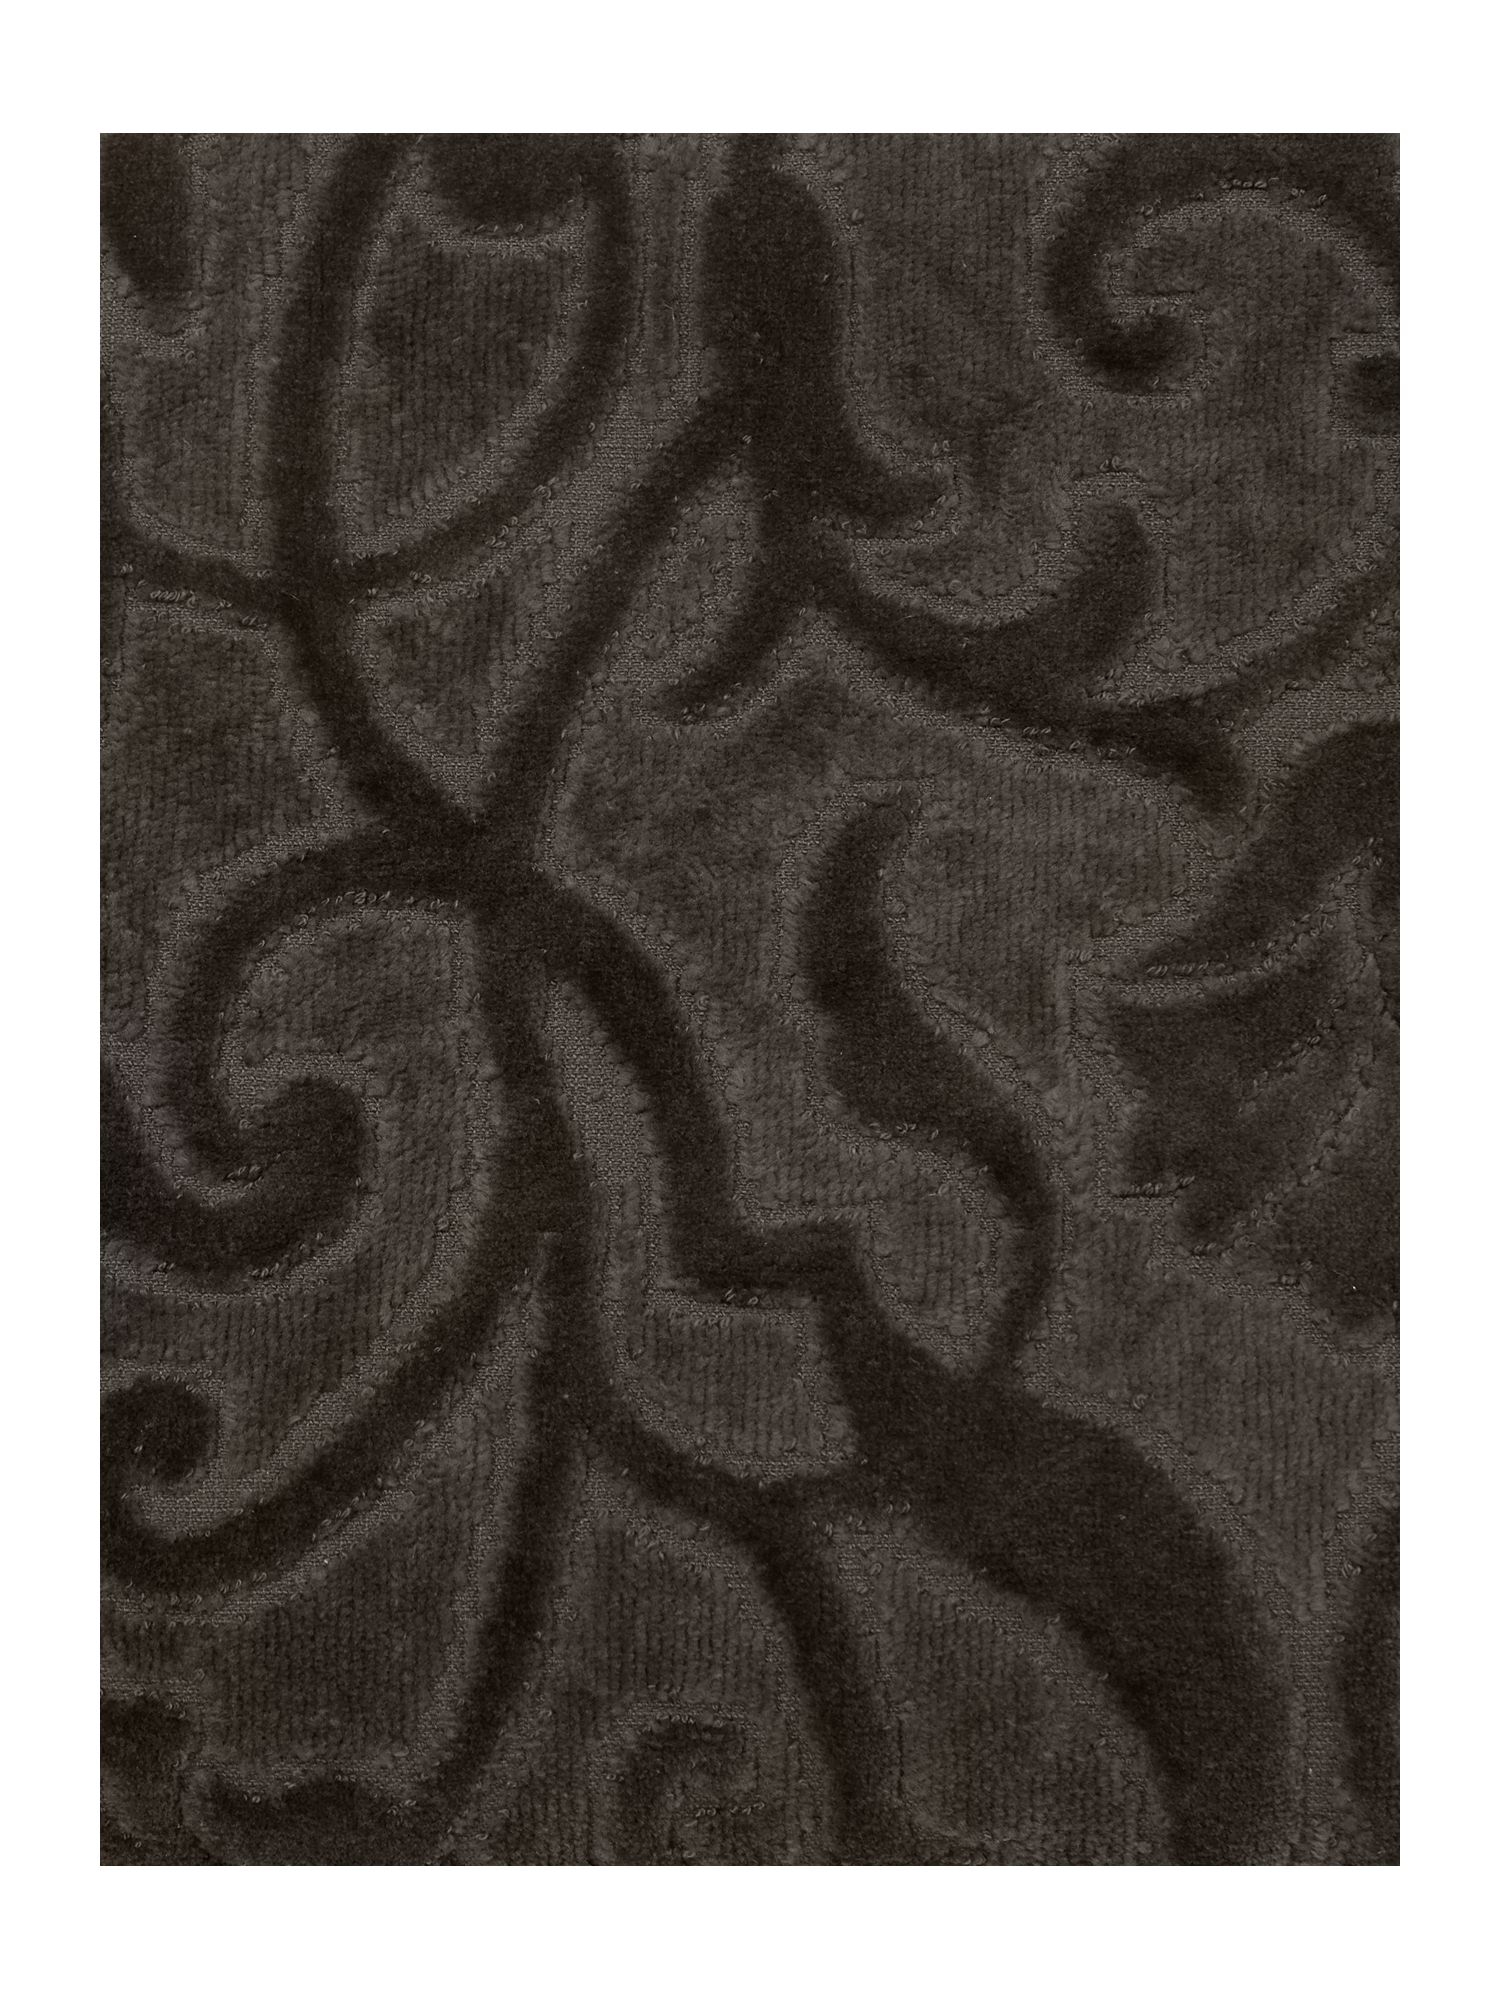 Heavy jacquard towels in charcoal